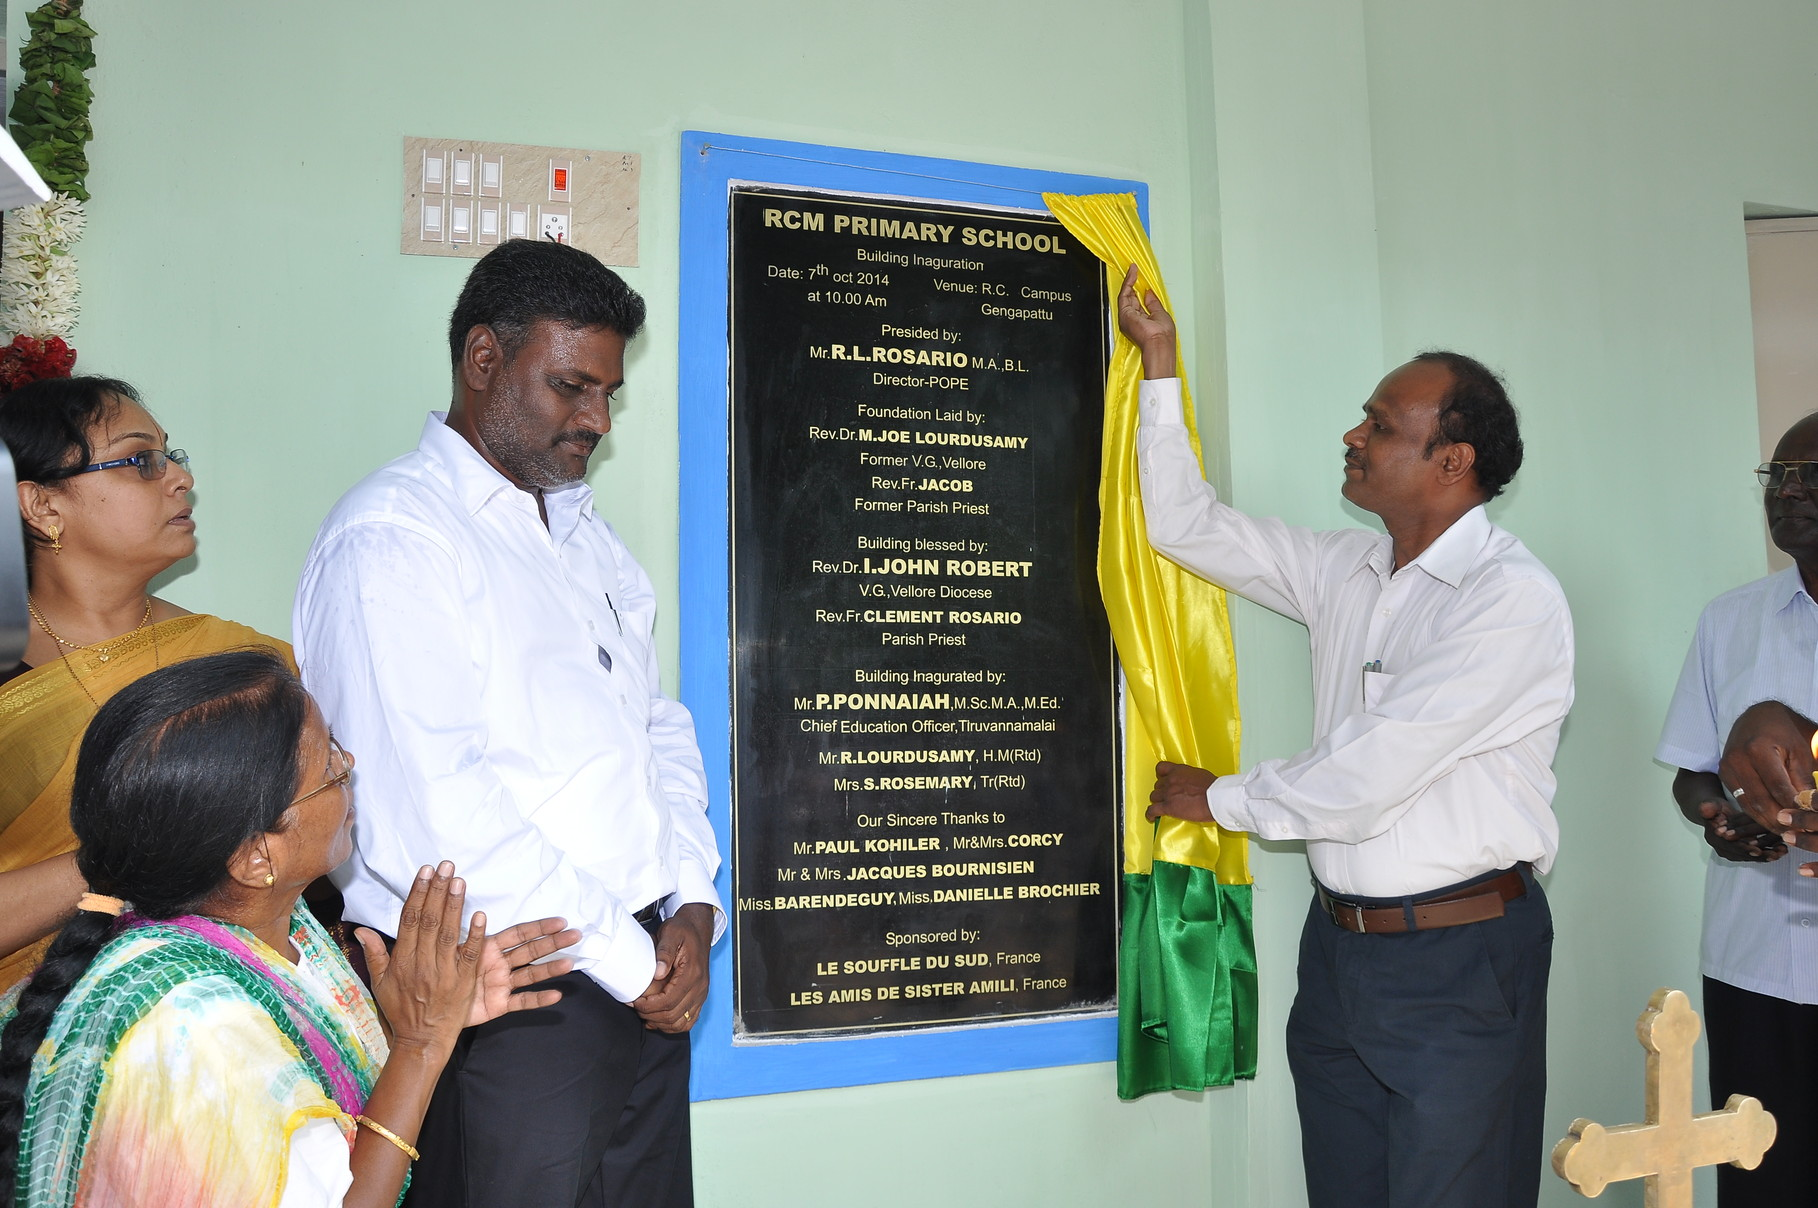 Unveiling of the plaque by Mr P. Ponnaiah, M.Sc., M.A., M.Ed., Chief Educational Officer, Tiruvannamalai